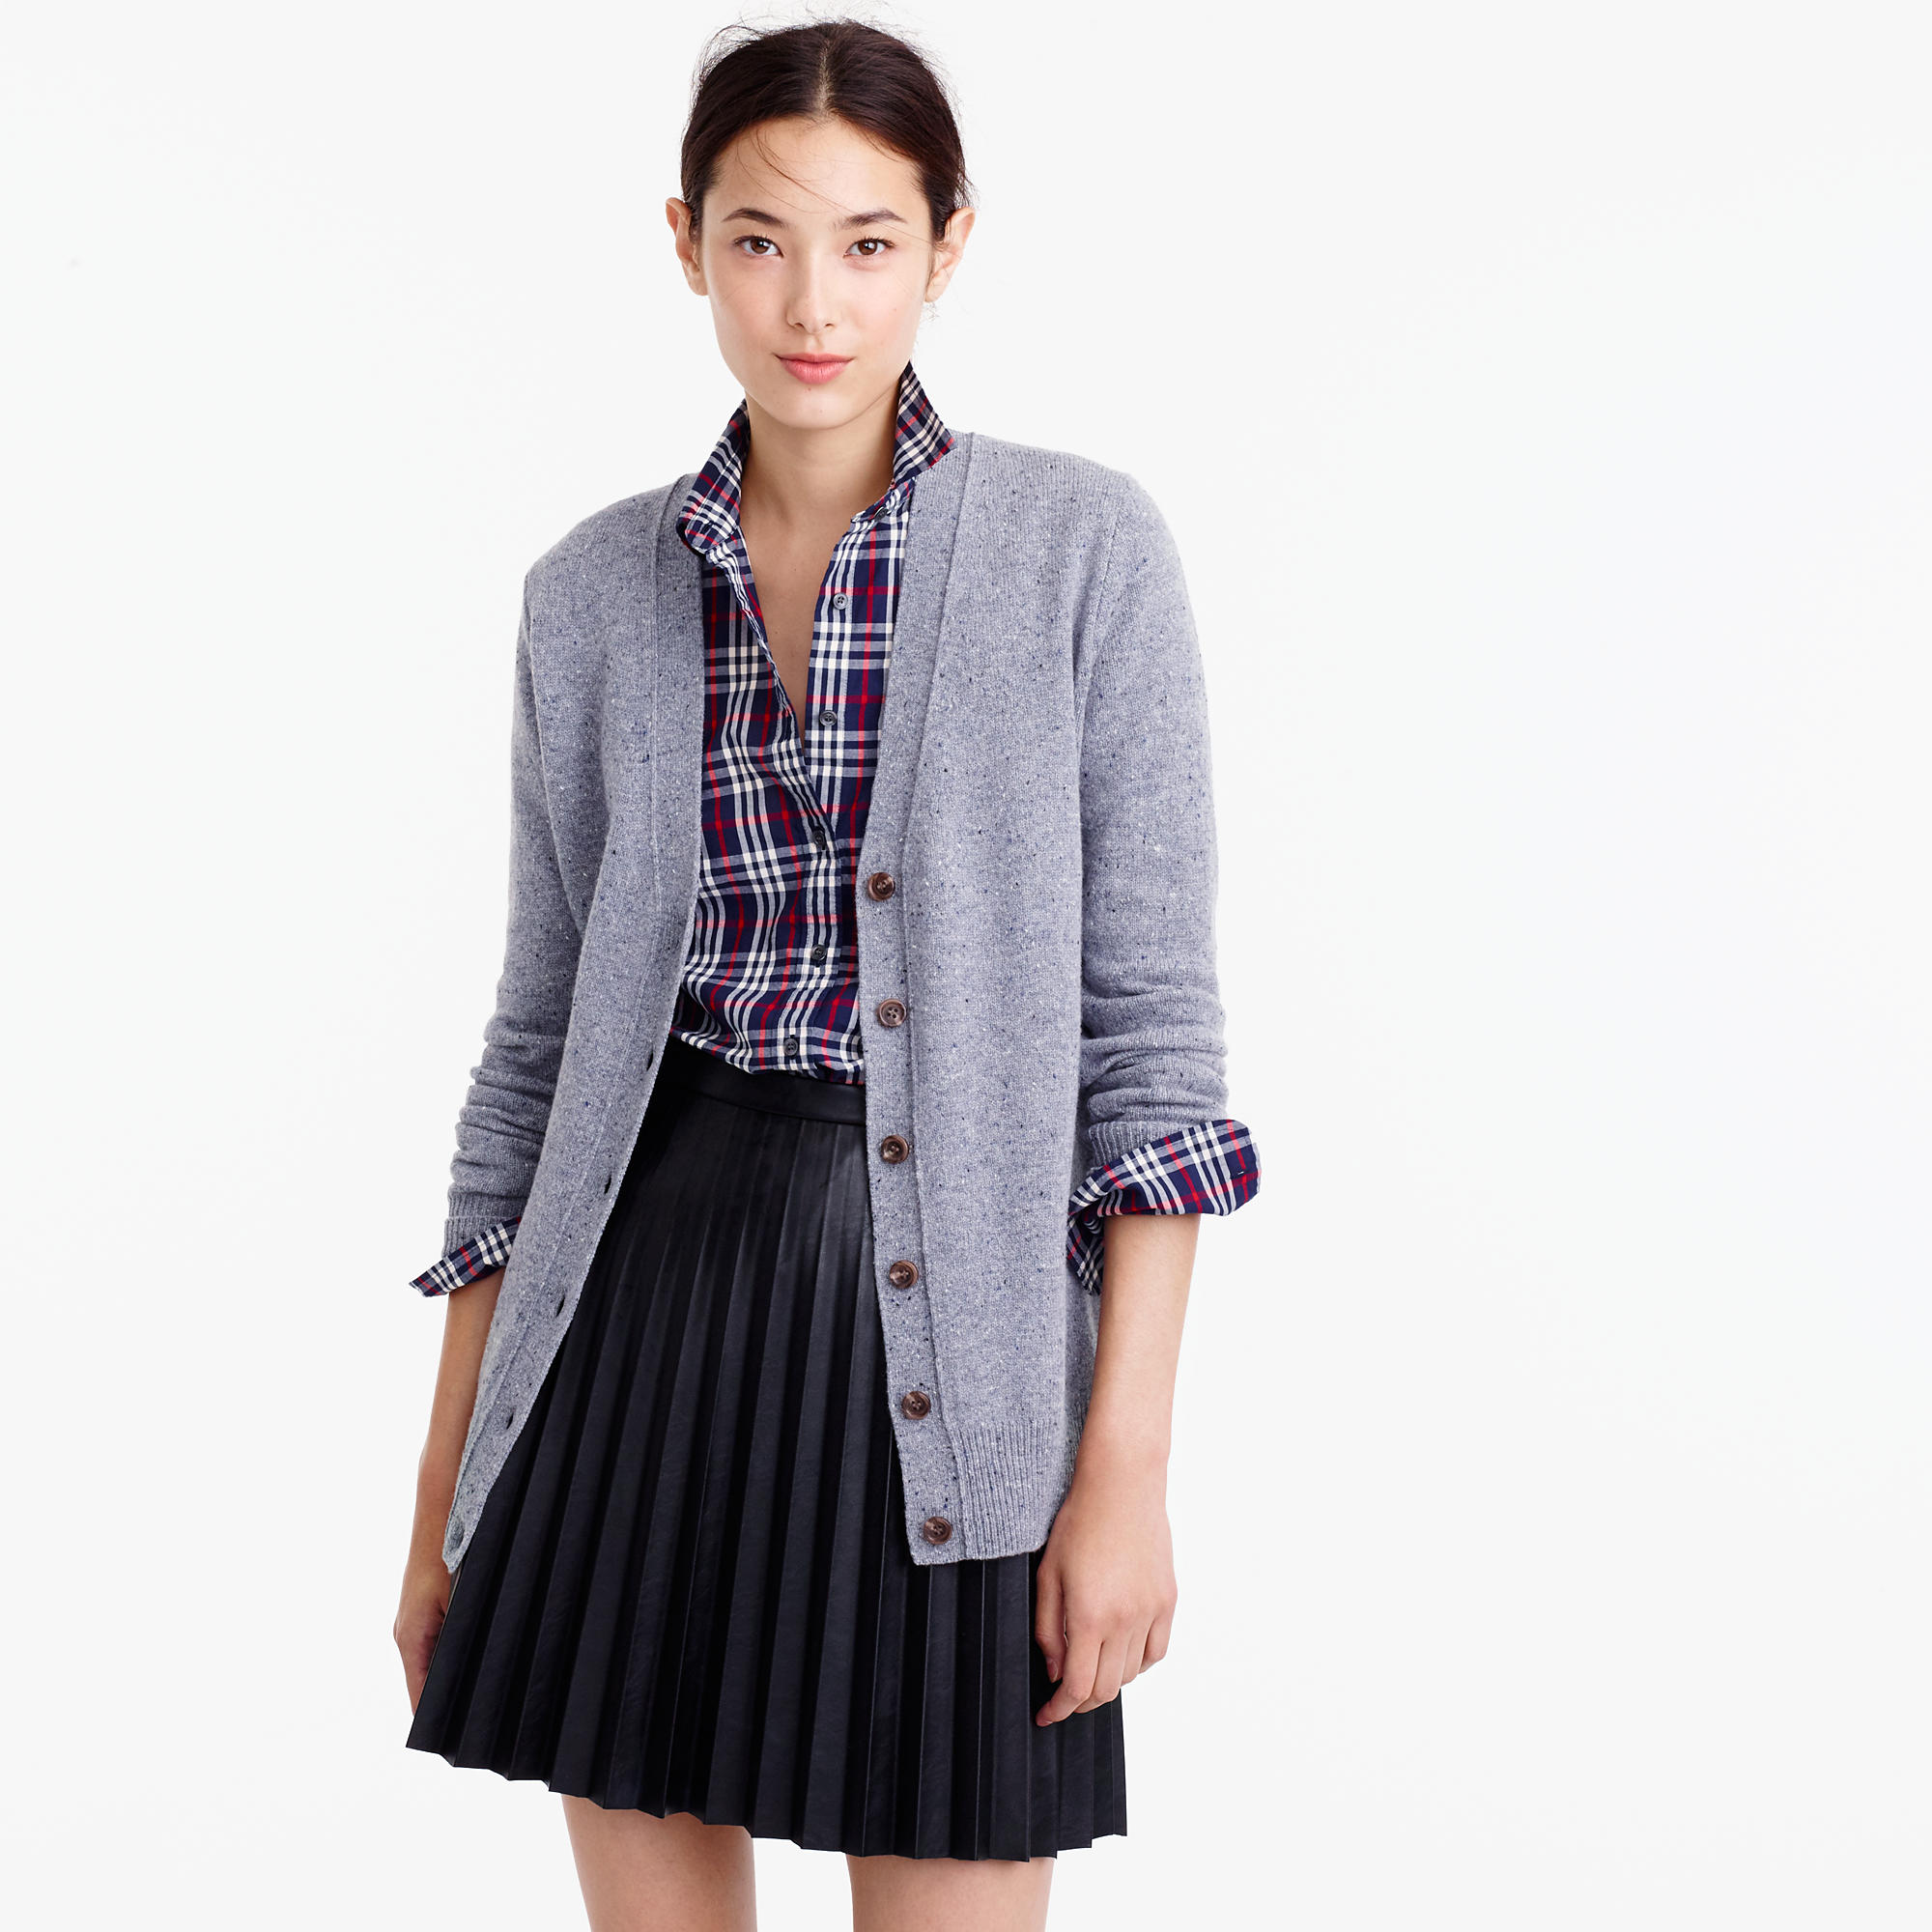 Classic V-Neck Cardigan In Donegal Wool : Women's Sweaters | J.Crew